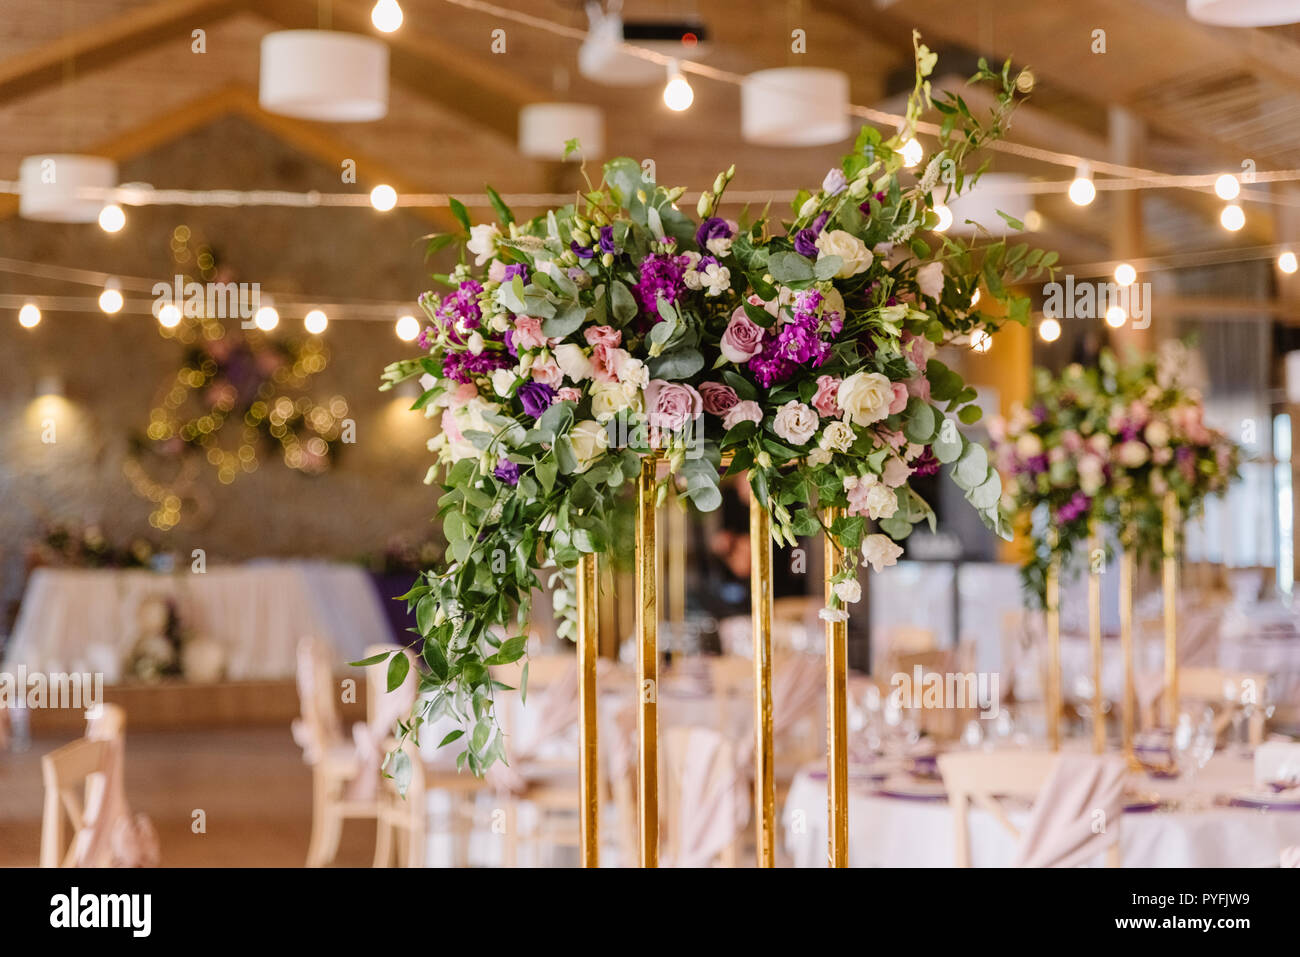 The high support in golden color decorated with flowers on a holiday table. - Stock Image